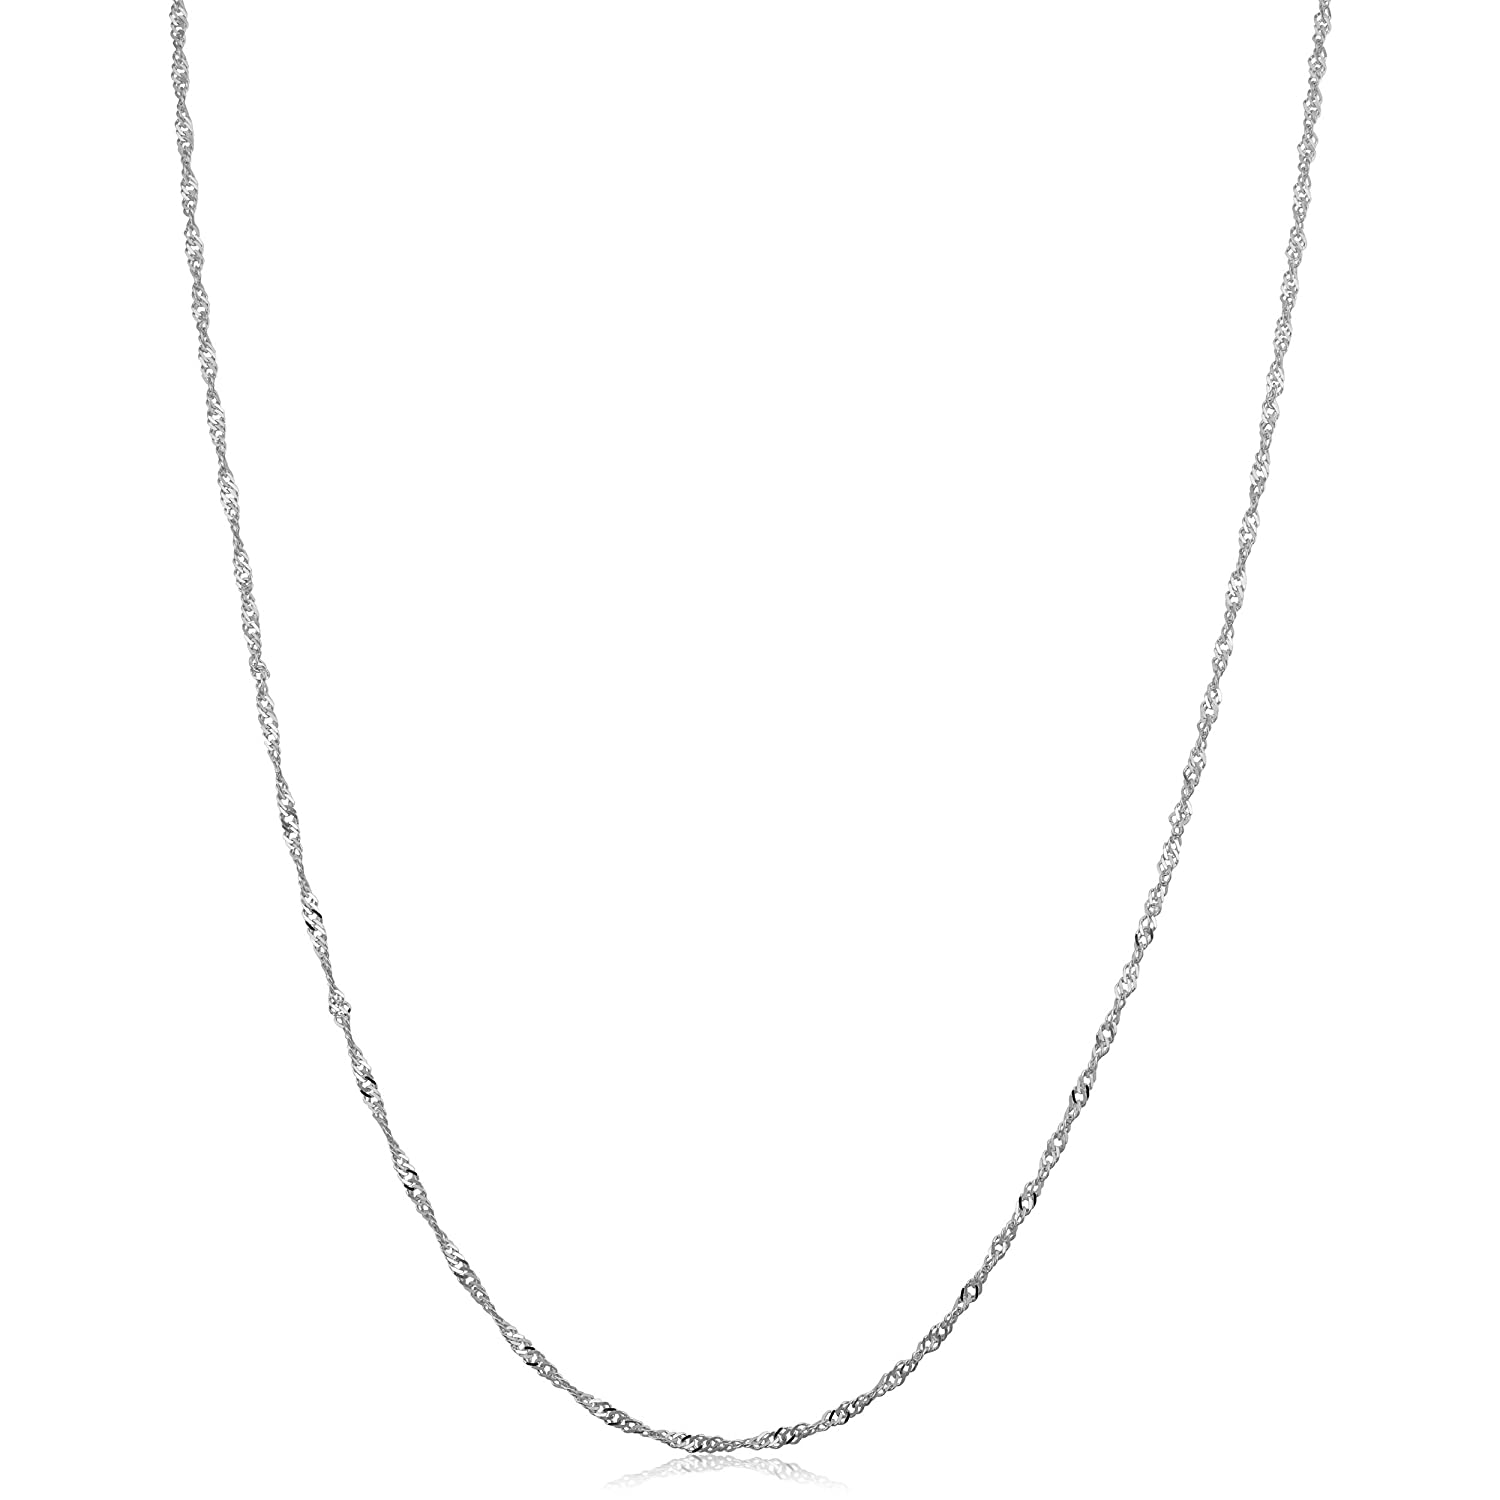 10k White Gold Singapore Chain Necklace 0.7mm, 1mm, 1.4mm, 1.7mm